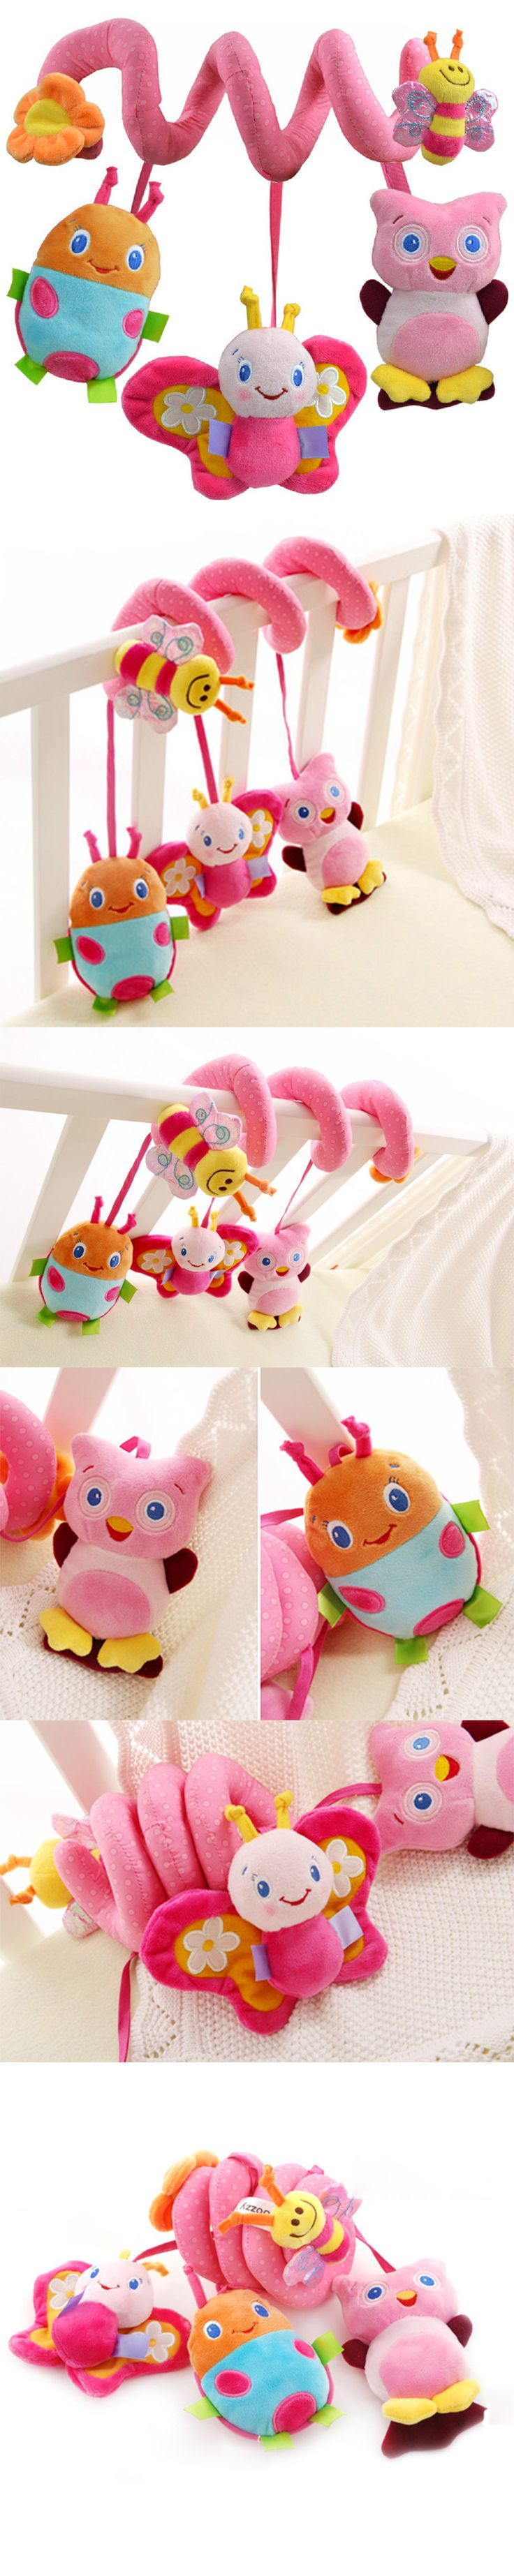 Crib for sale in cebu - Hot Sale Baby Cot Spiral Activity Hanging Decoration Toys For Cot Car Seat Pram